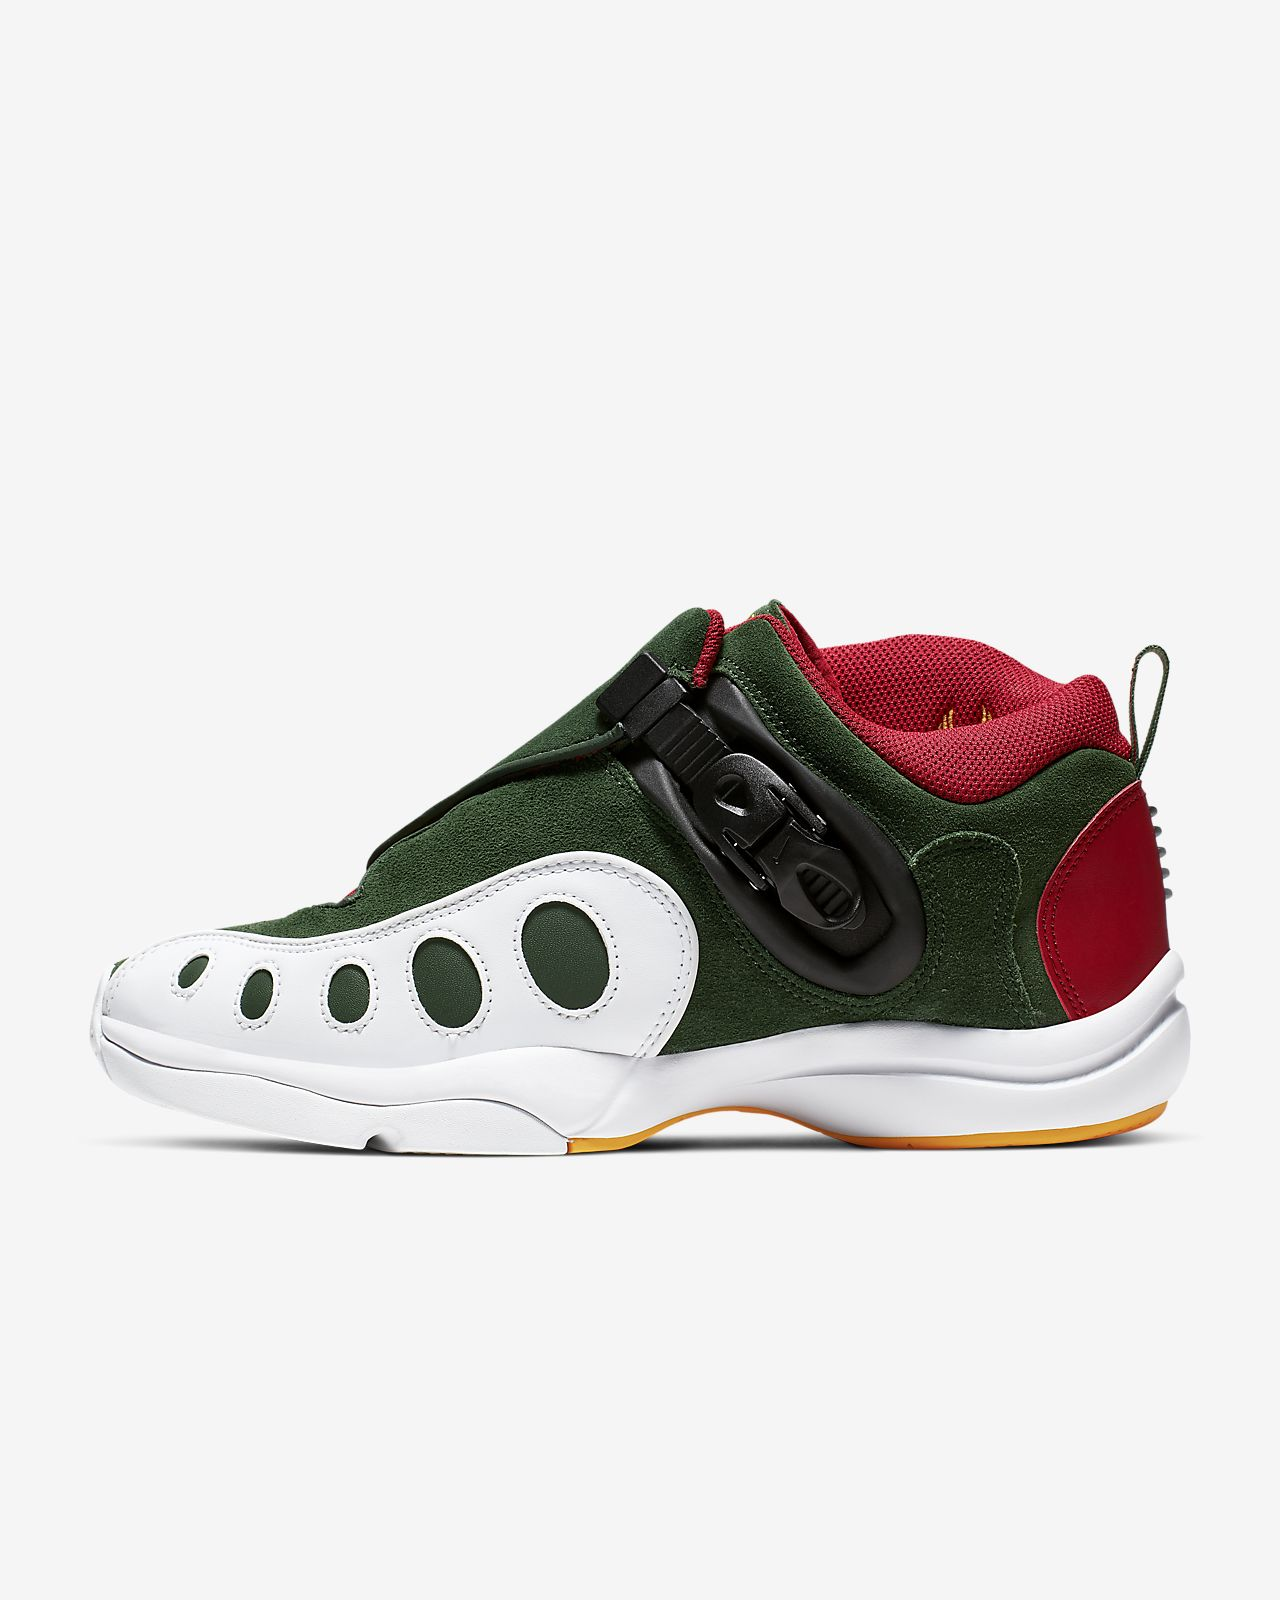 Nike Zoom GP Men's Shoe